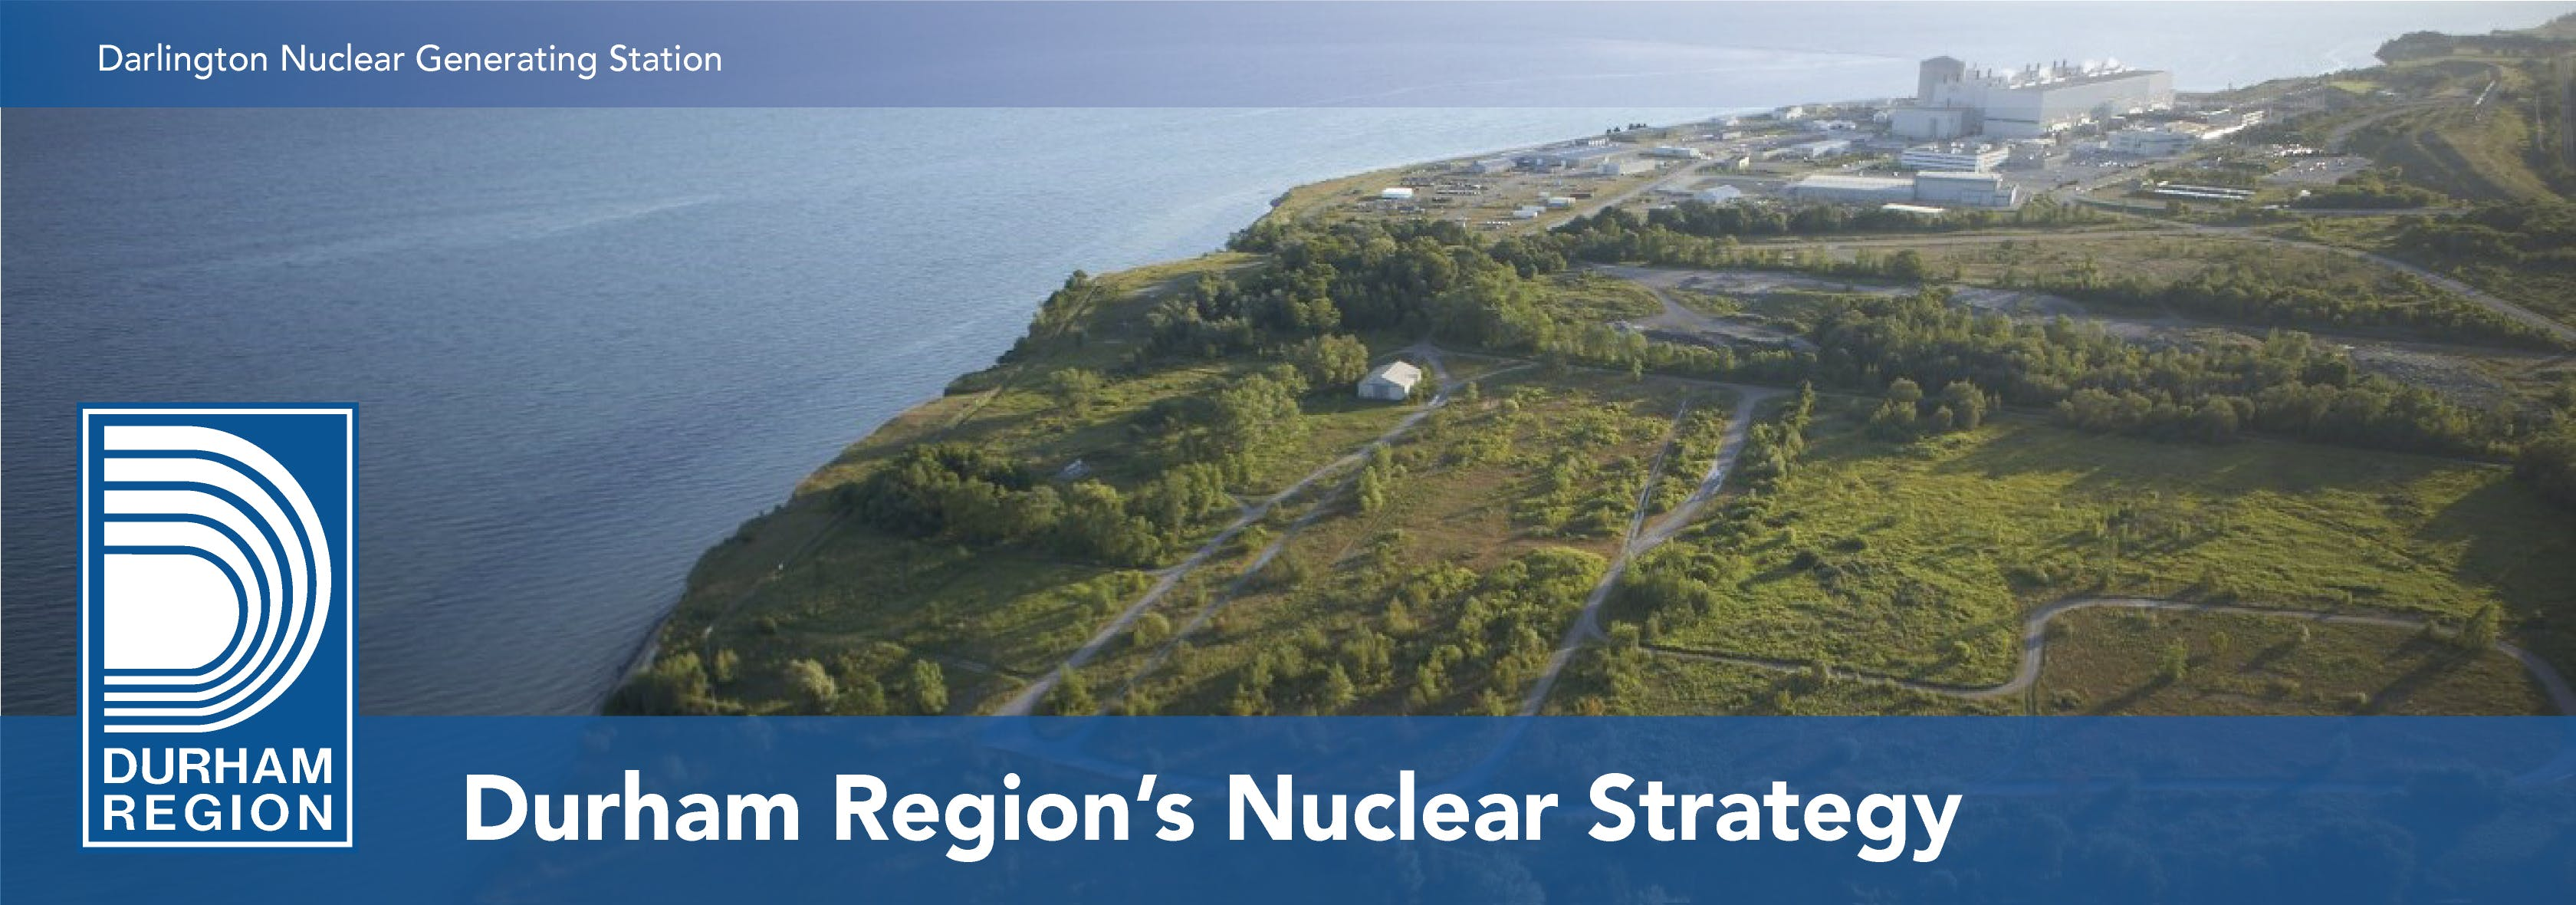 An aerial photograph of the Darlington Nuclear Generating Station, Lake Ontario, and the future site of the Darlington New Nuclear Project.